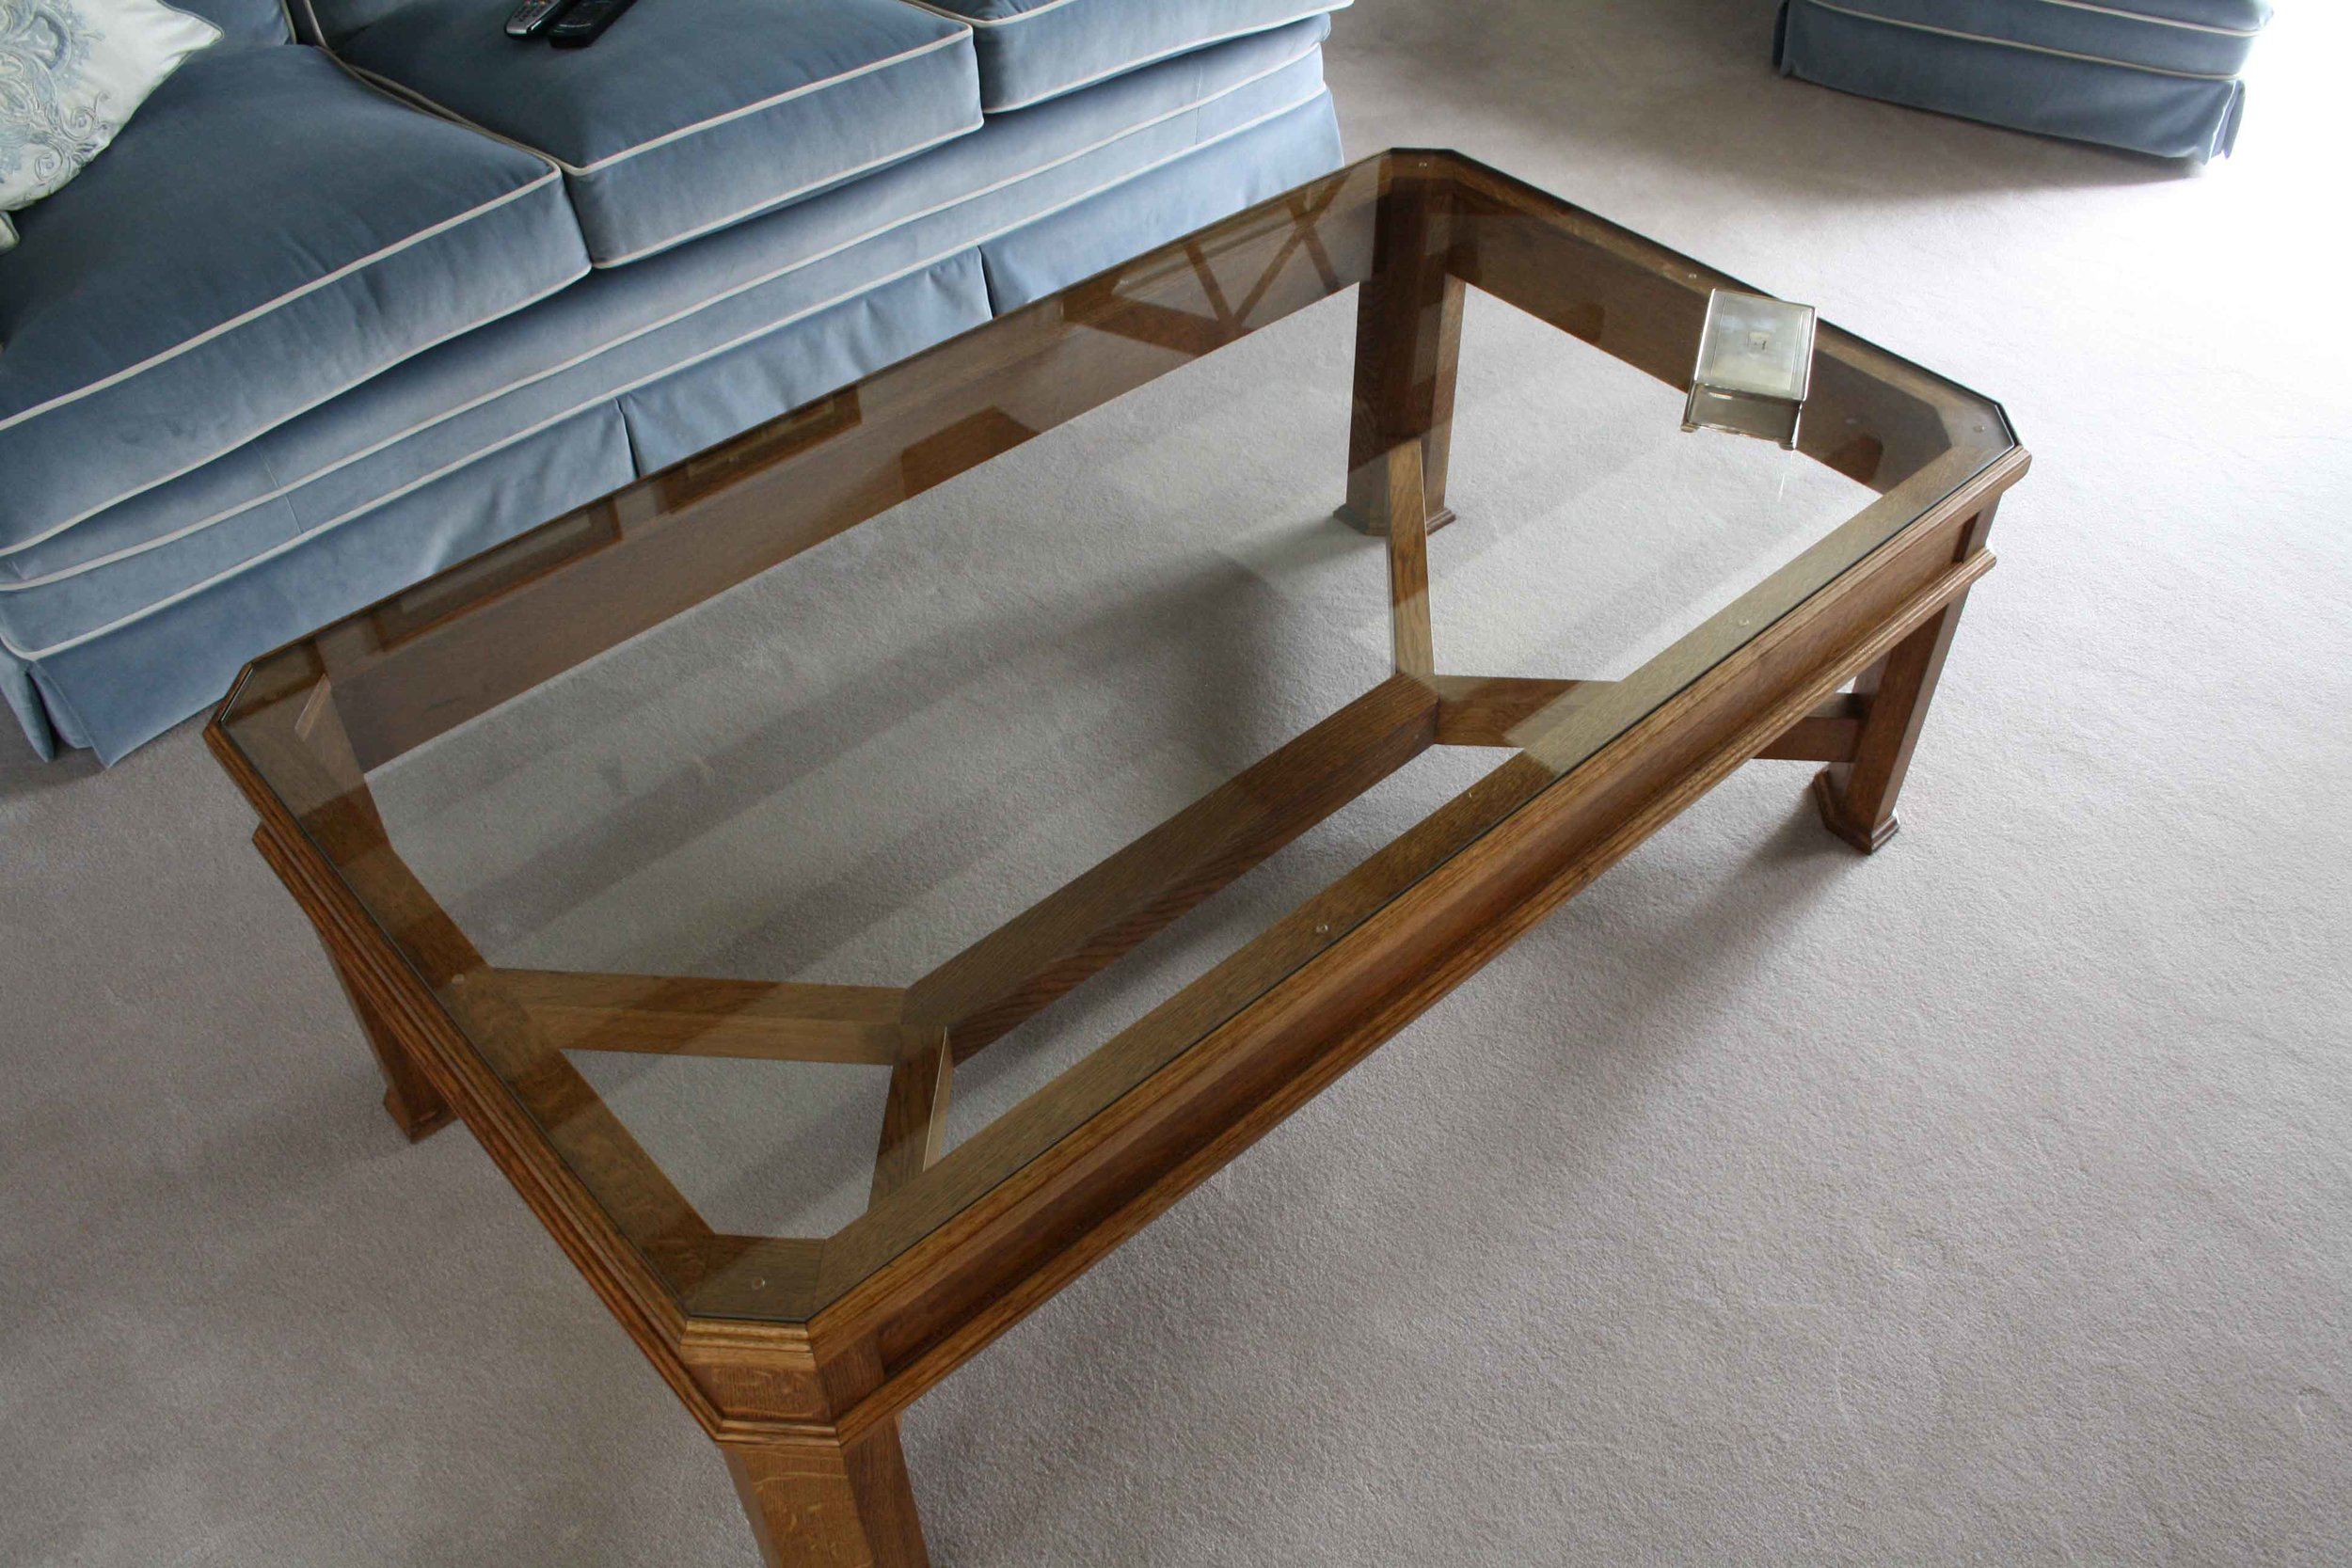 bespoke-oak-coffee-table3.jpg